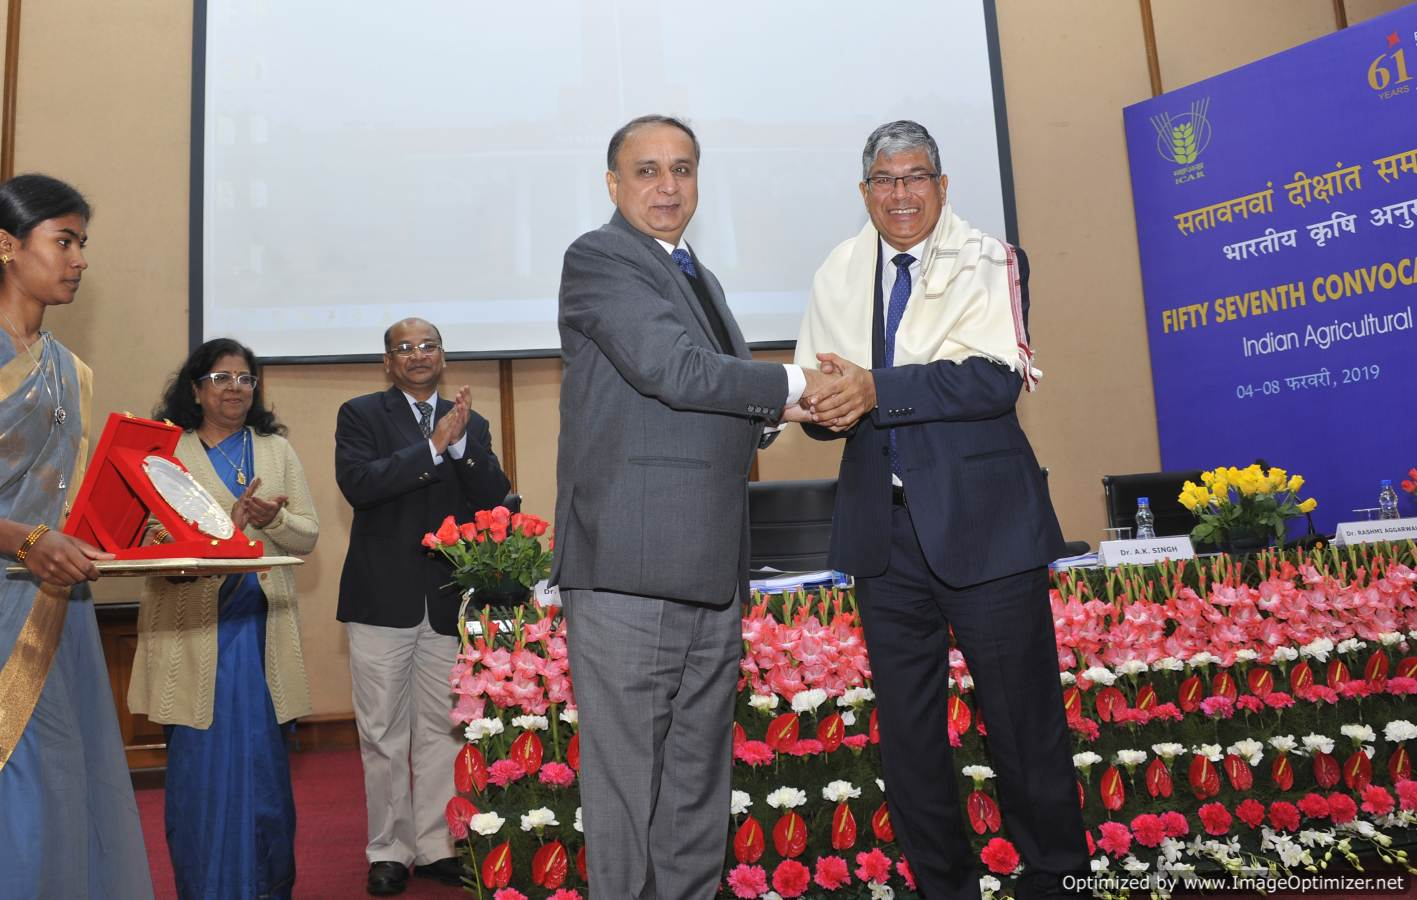 Dr. A.K. Singh, DDG (Ext) and Director felicitating Dr. P.K. Joshi , Director, South Asia, IFPRI, New Delhi during the presentation of significant educational achievements of 2018 on 6.02.19